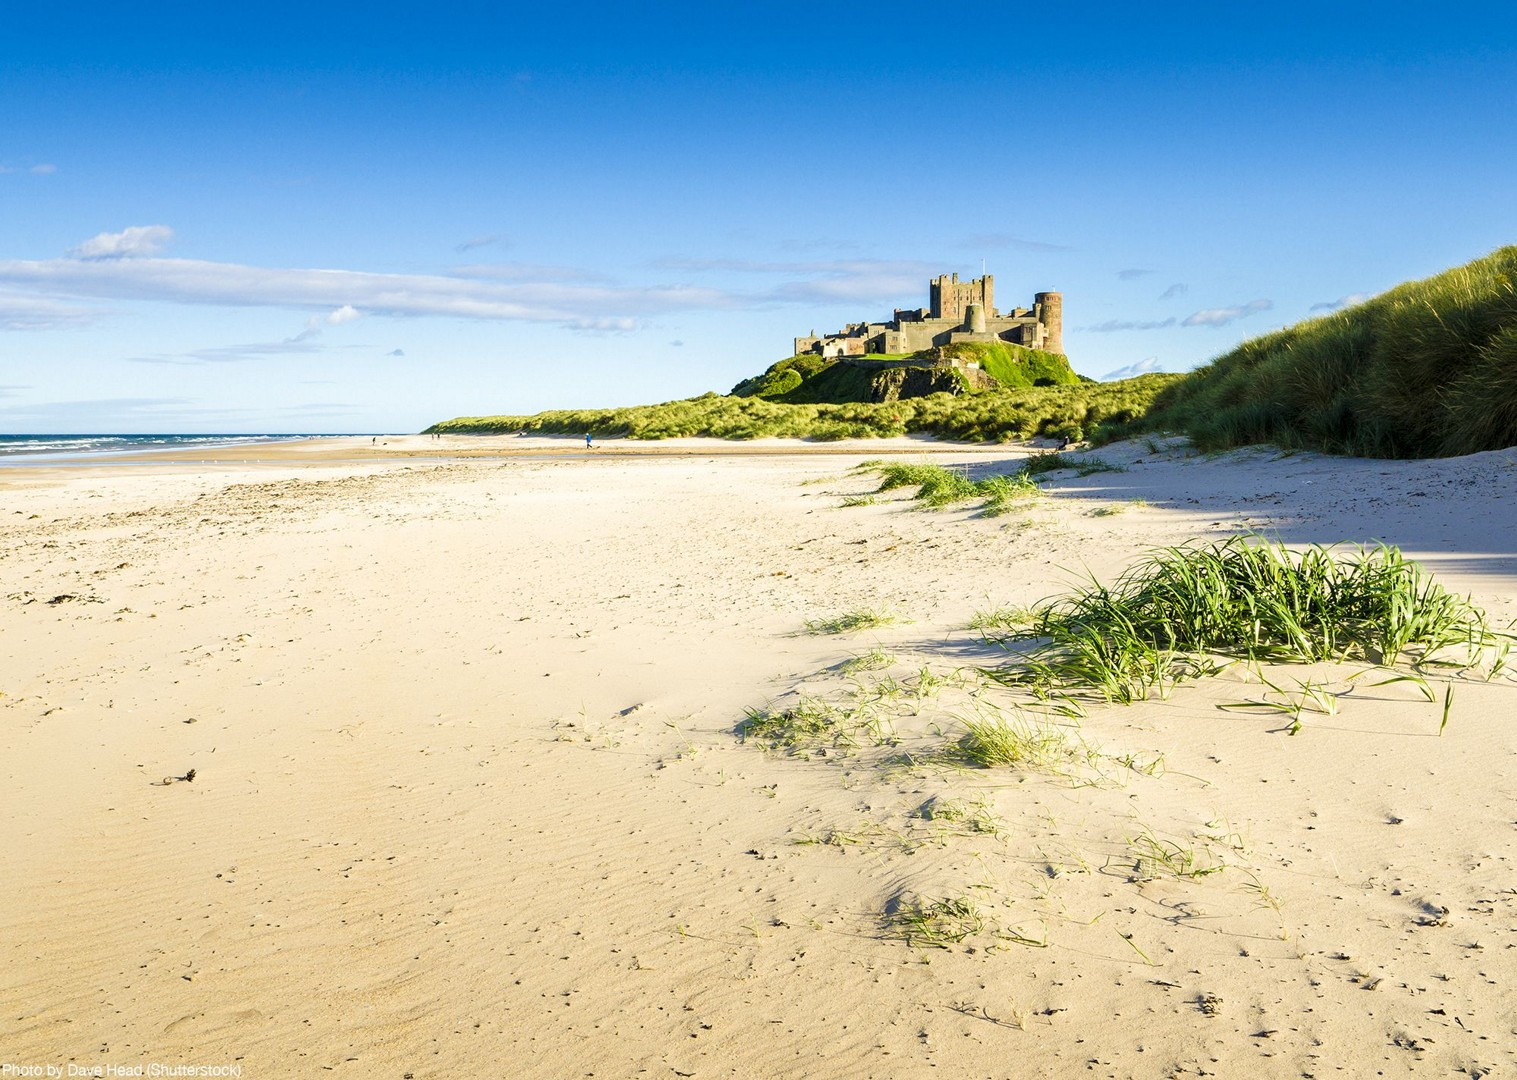 coast-beach-bike-tour-uk-self-guided-saddle-skedaddle-warkworth-castle.jpg - UK - Northumberland - Alnmouth - Self-Guided Leisure Cycling Holiday - Leisure Cycling